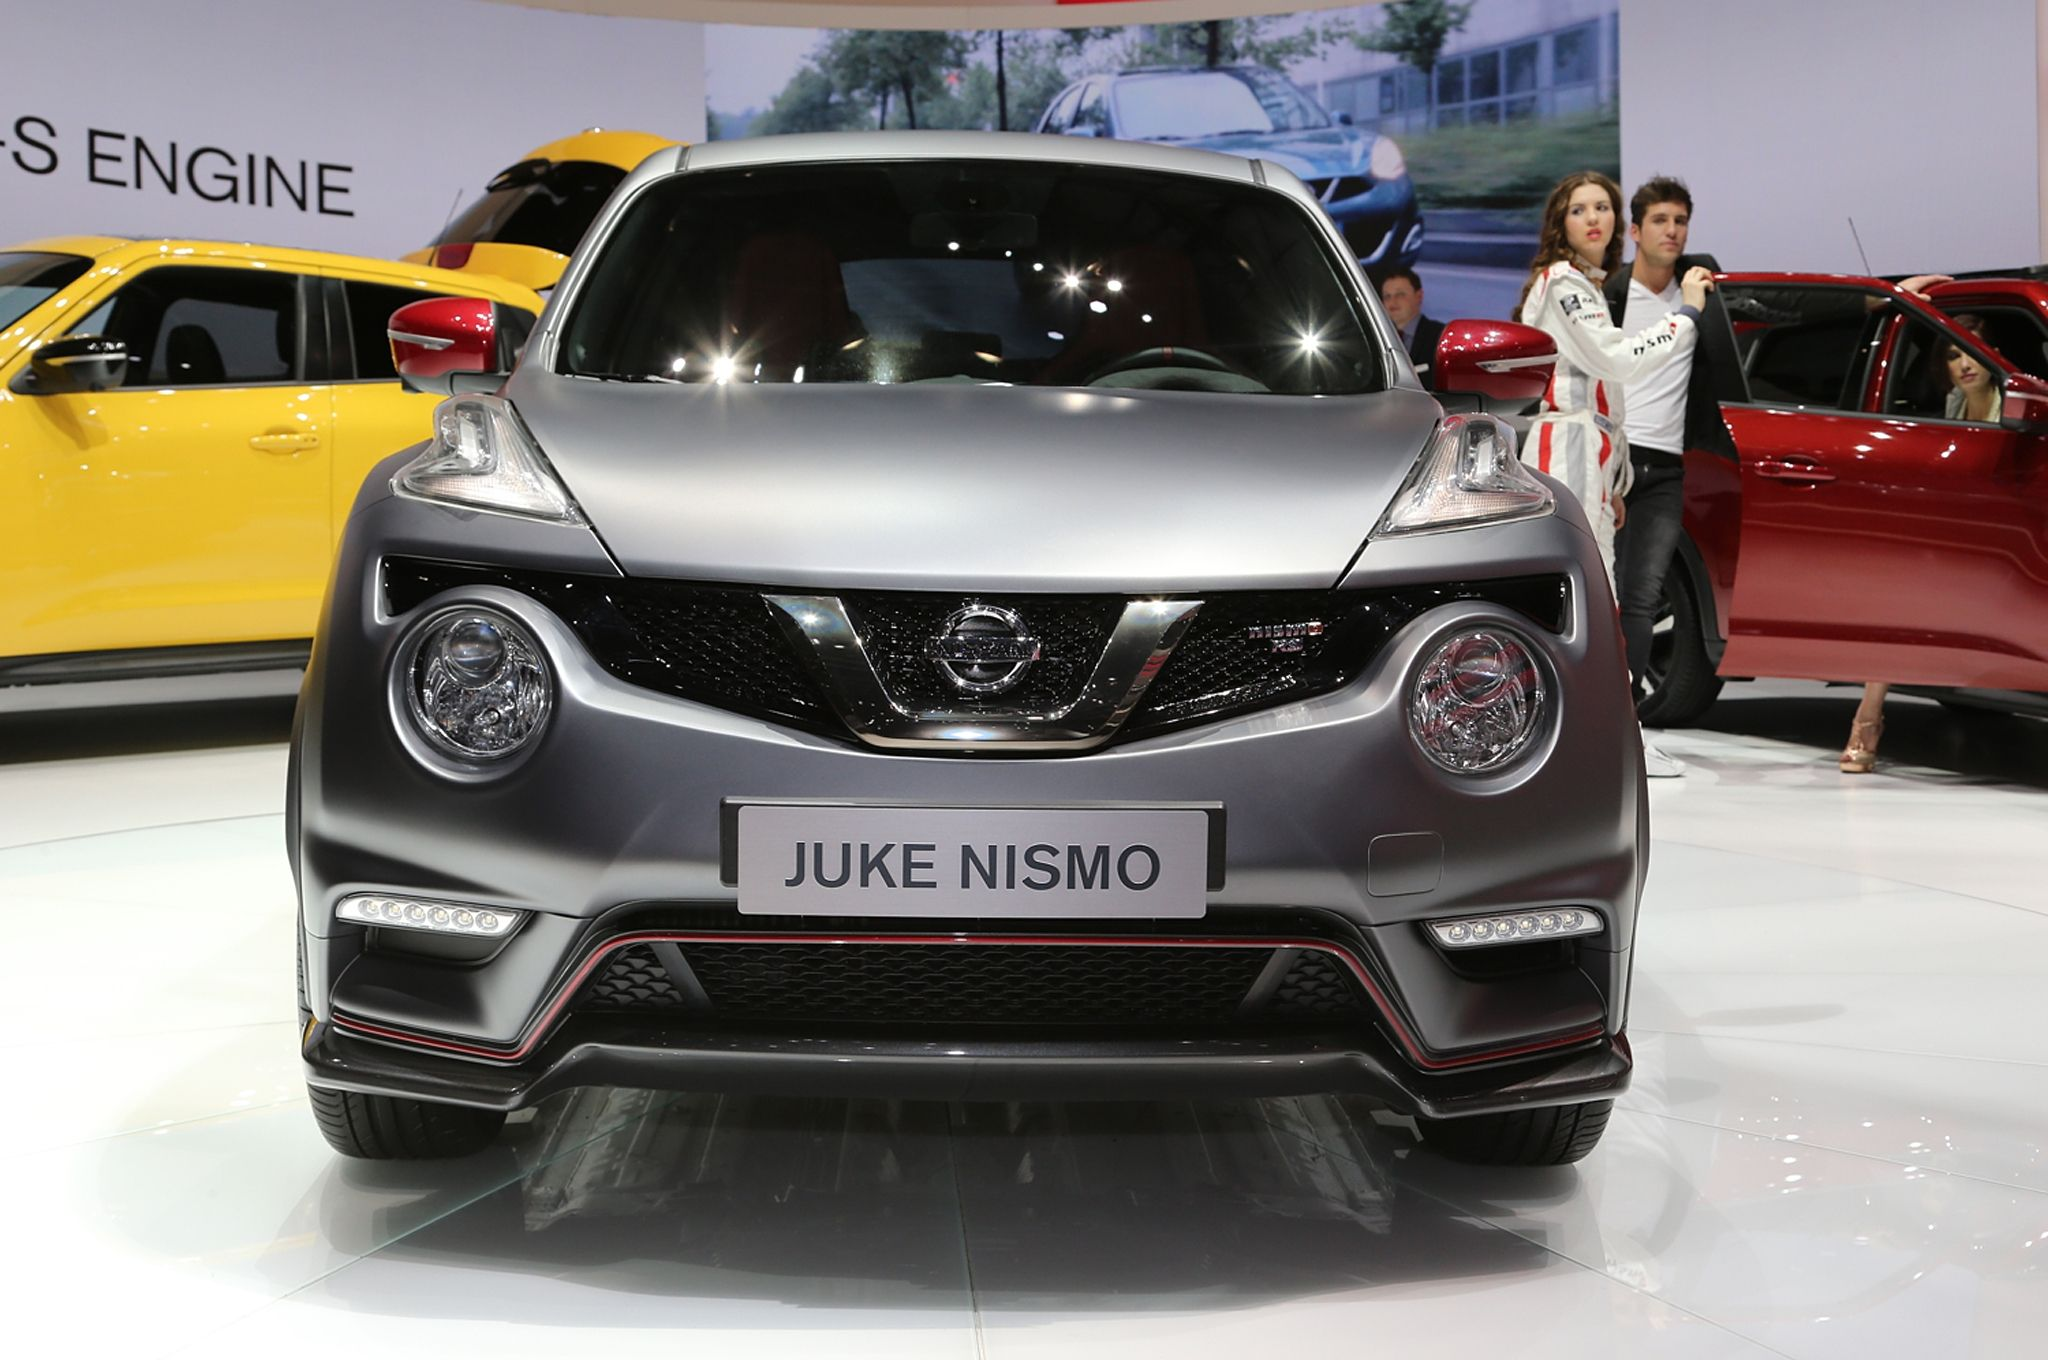 2017 nissan juke nismo engine and price http www abbeyallenart